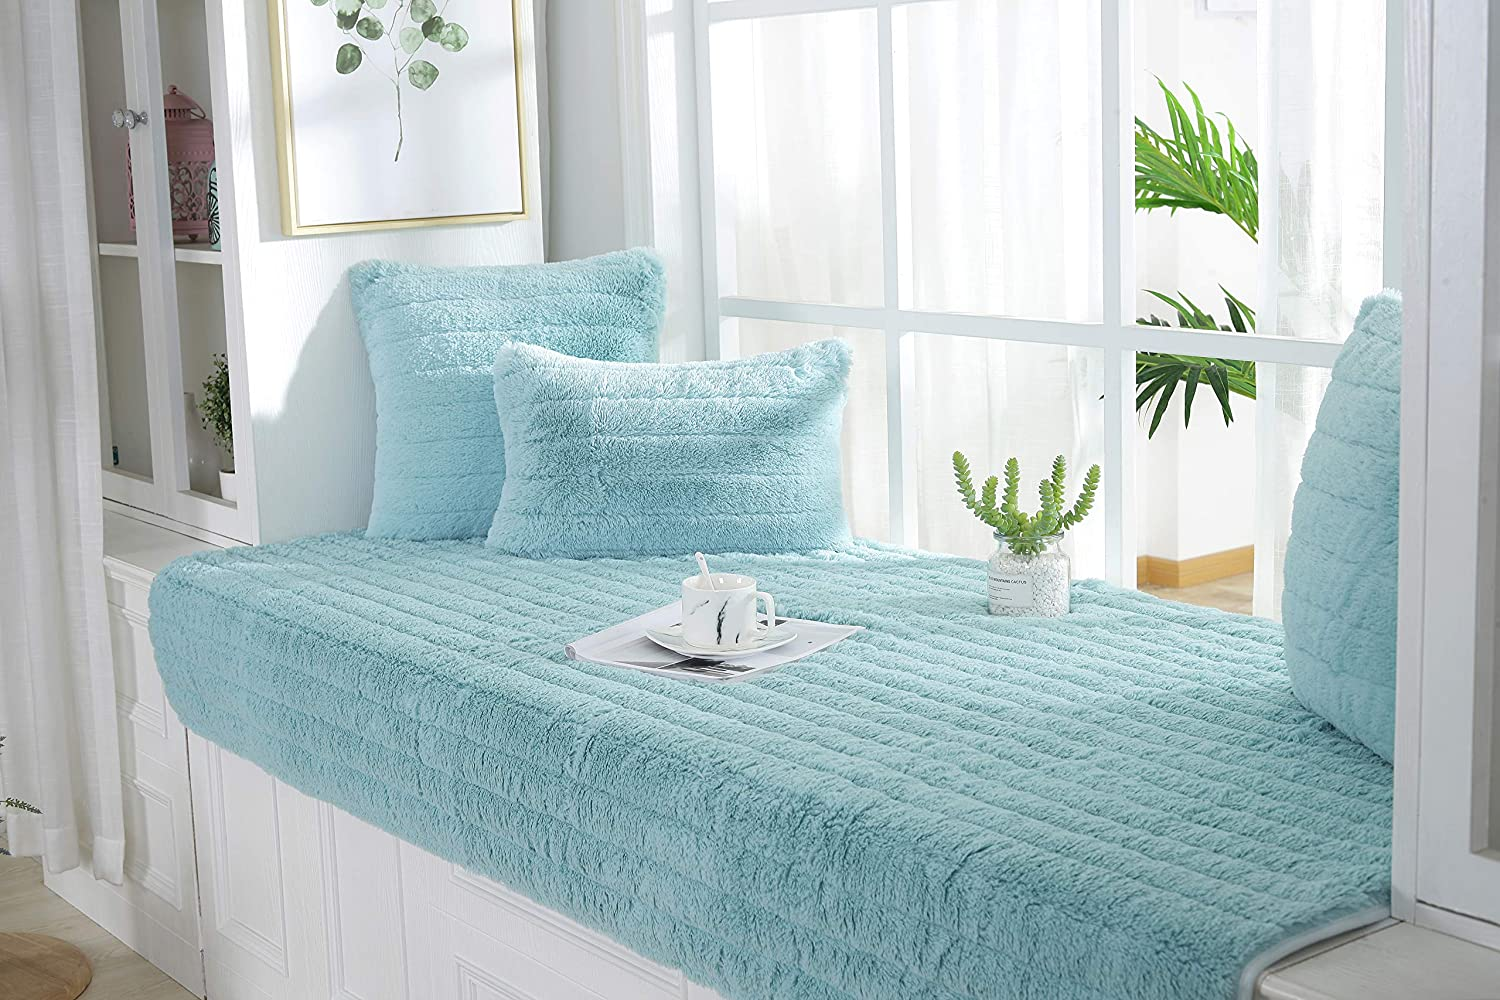 VersionA Solid Color Bay Window Cushion,Plush Thicked Window Bench mat,Balconies pad,Simple Machine Washable Window seat Cushions Indoor-A 45x45cm 18x18inch